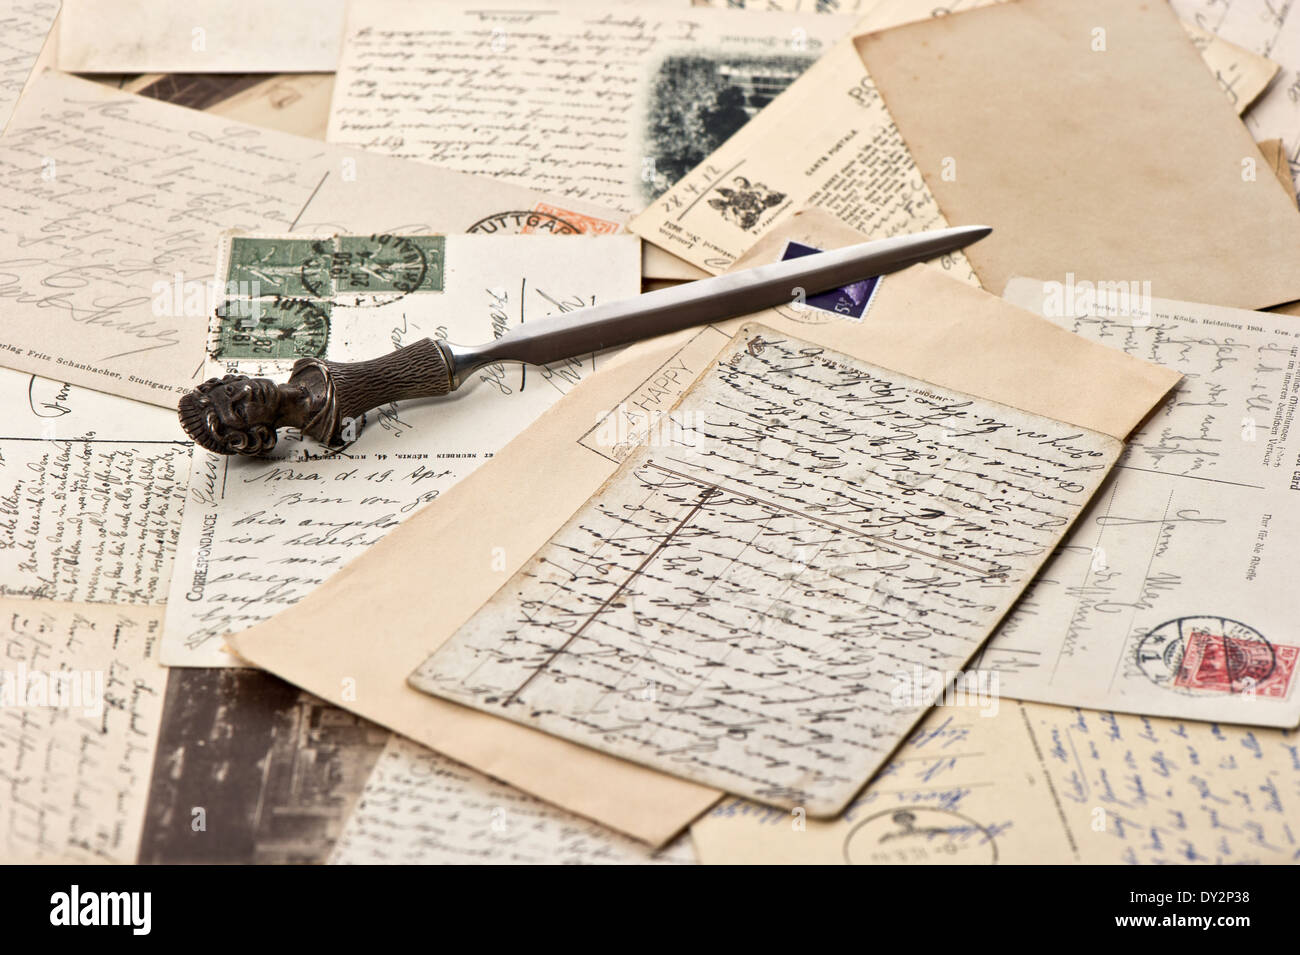 old papers and post cards with letter opener. vintage grunge background. selective focus - Stock Image